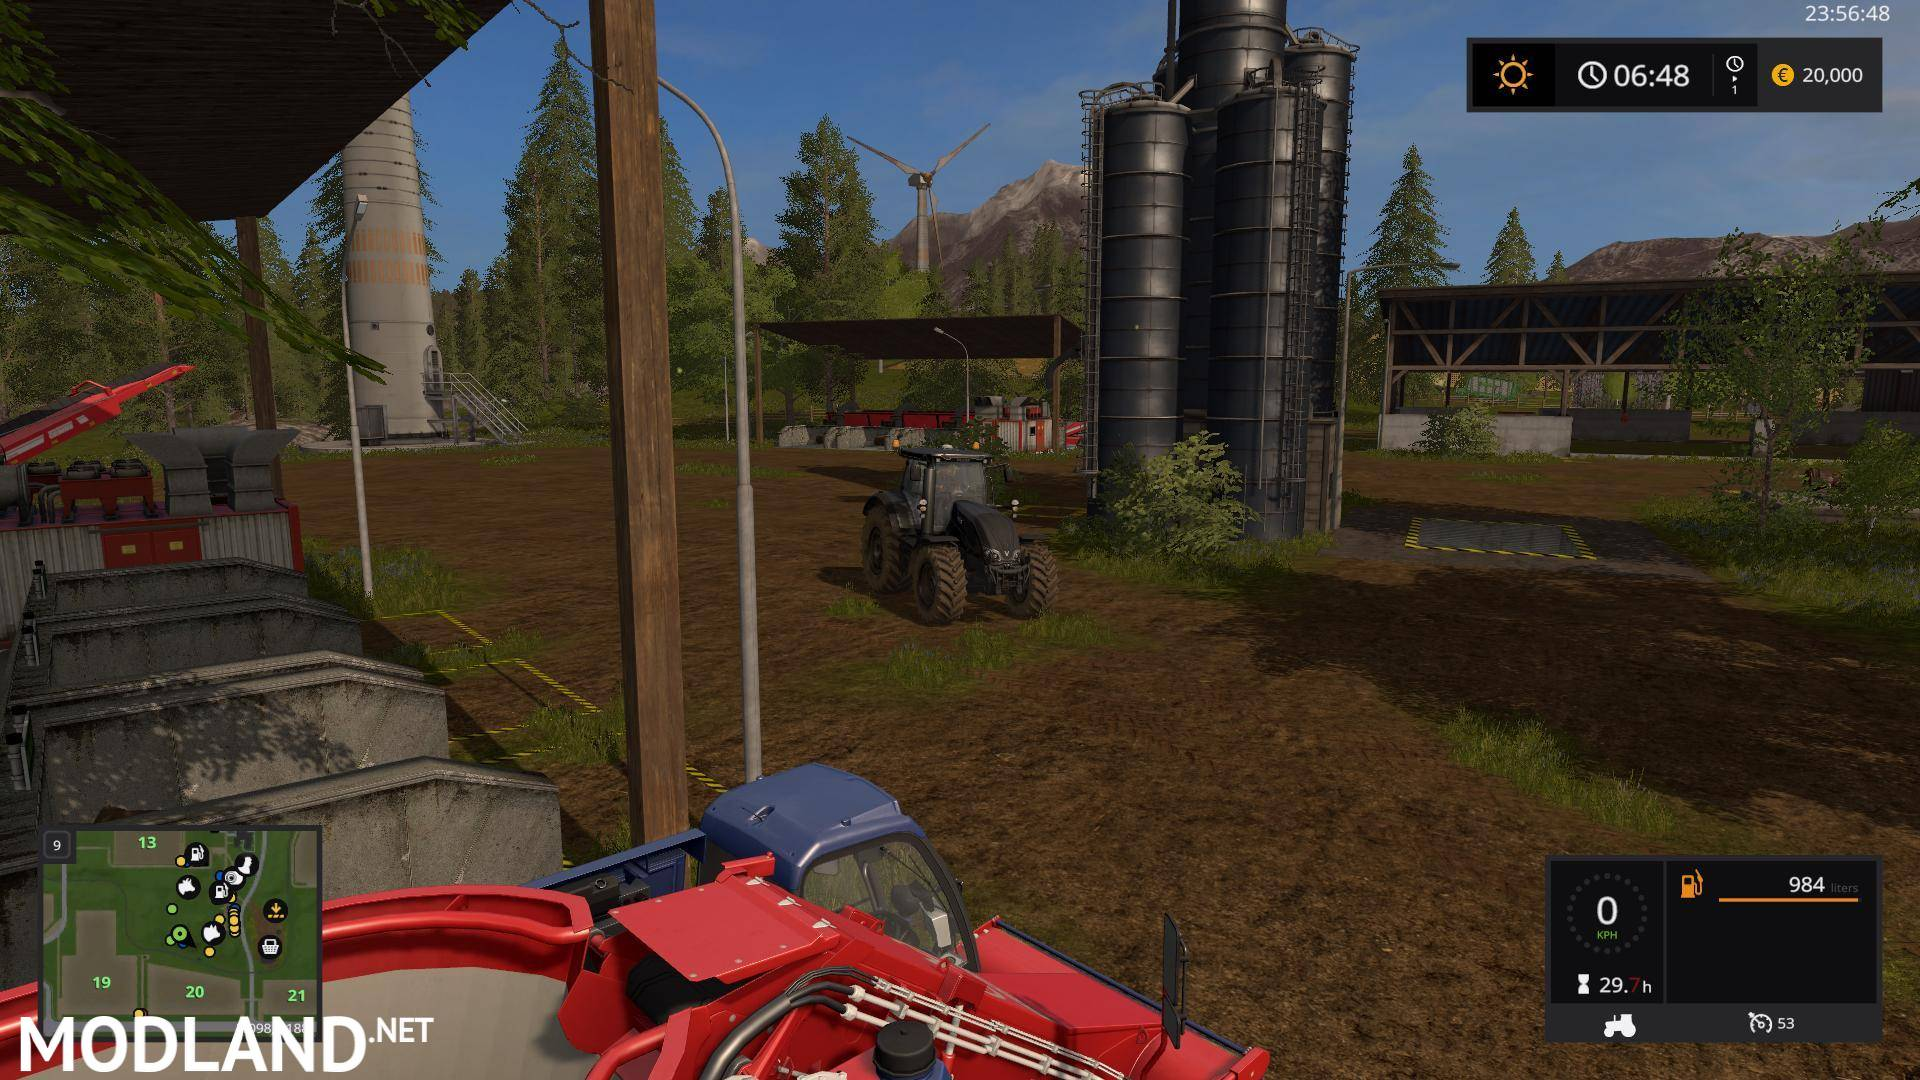 Goldcrest Valley Map by wopito v 1 3 1 0 mod Farming